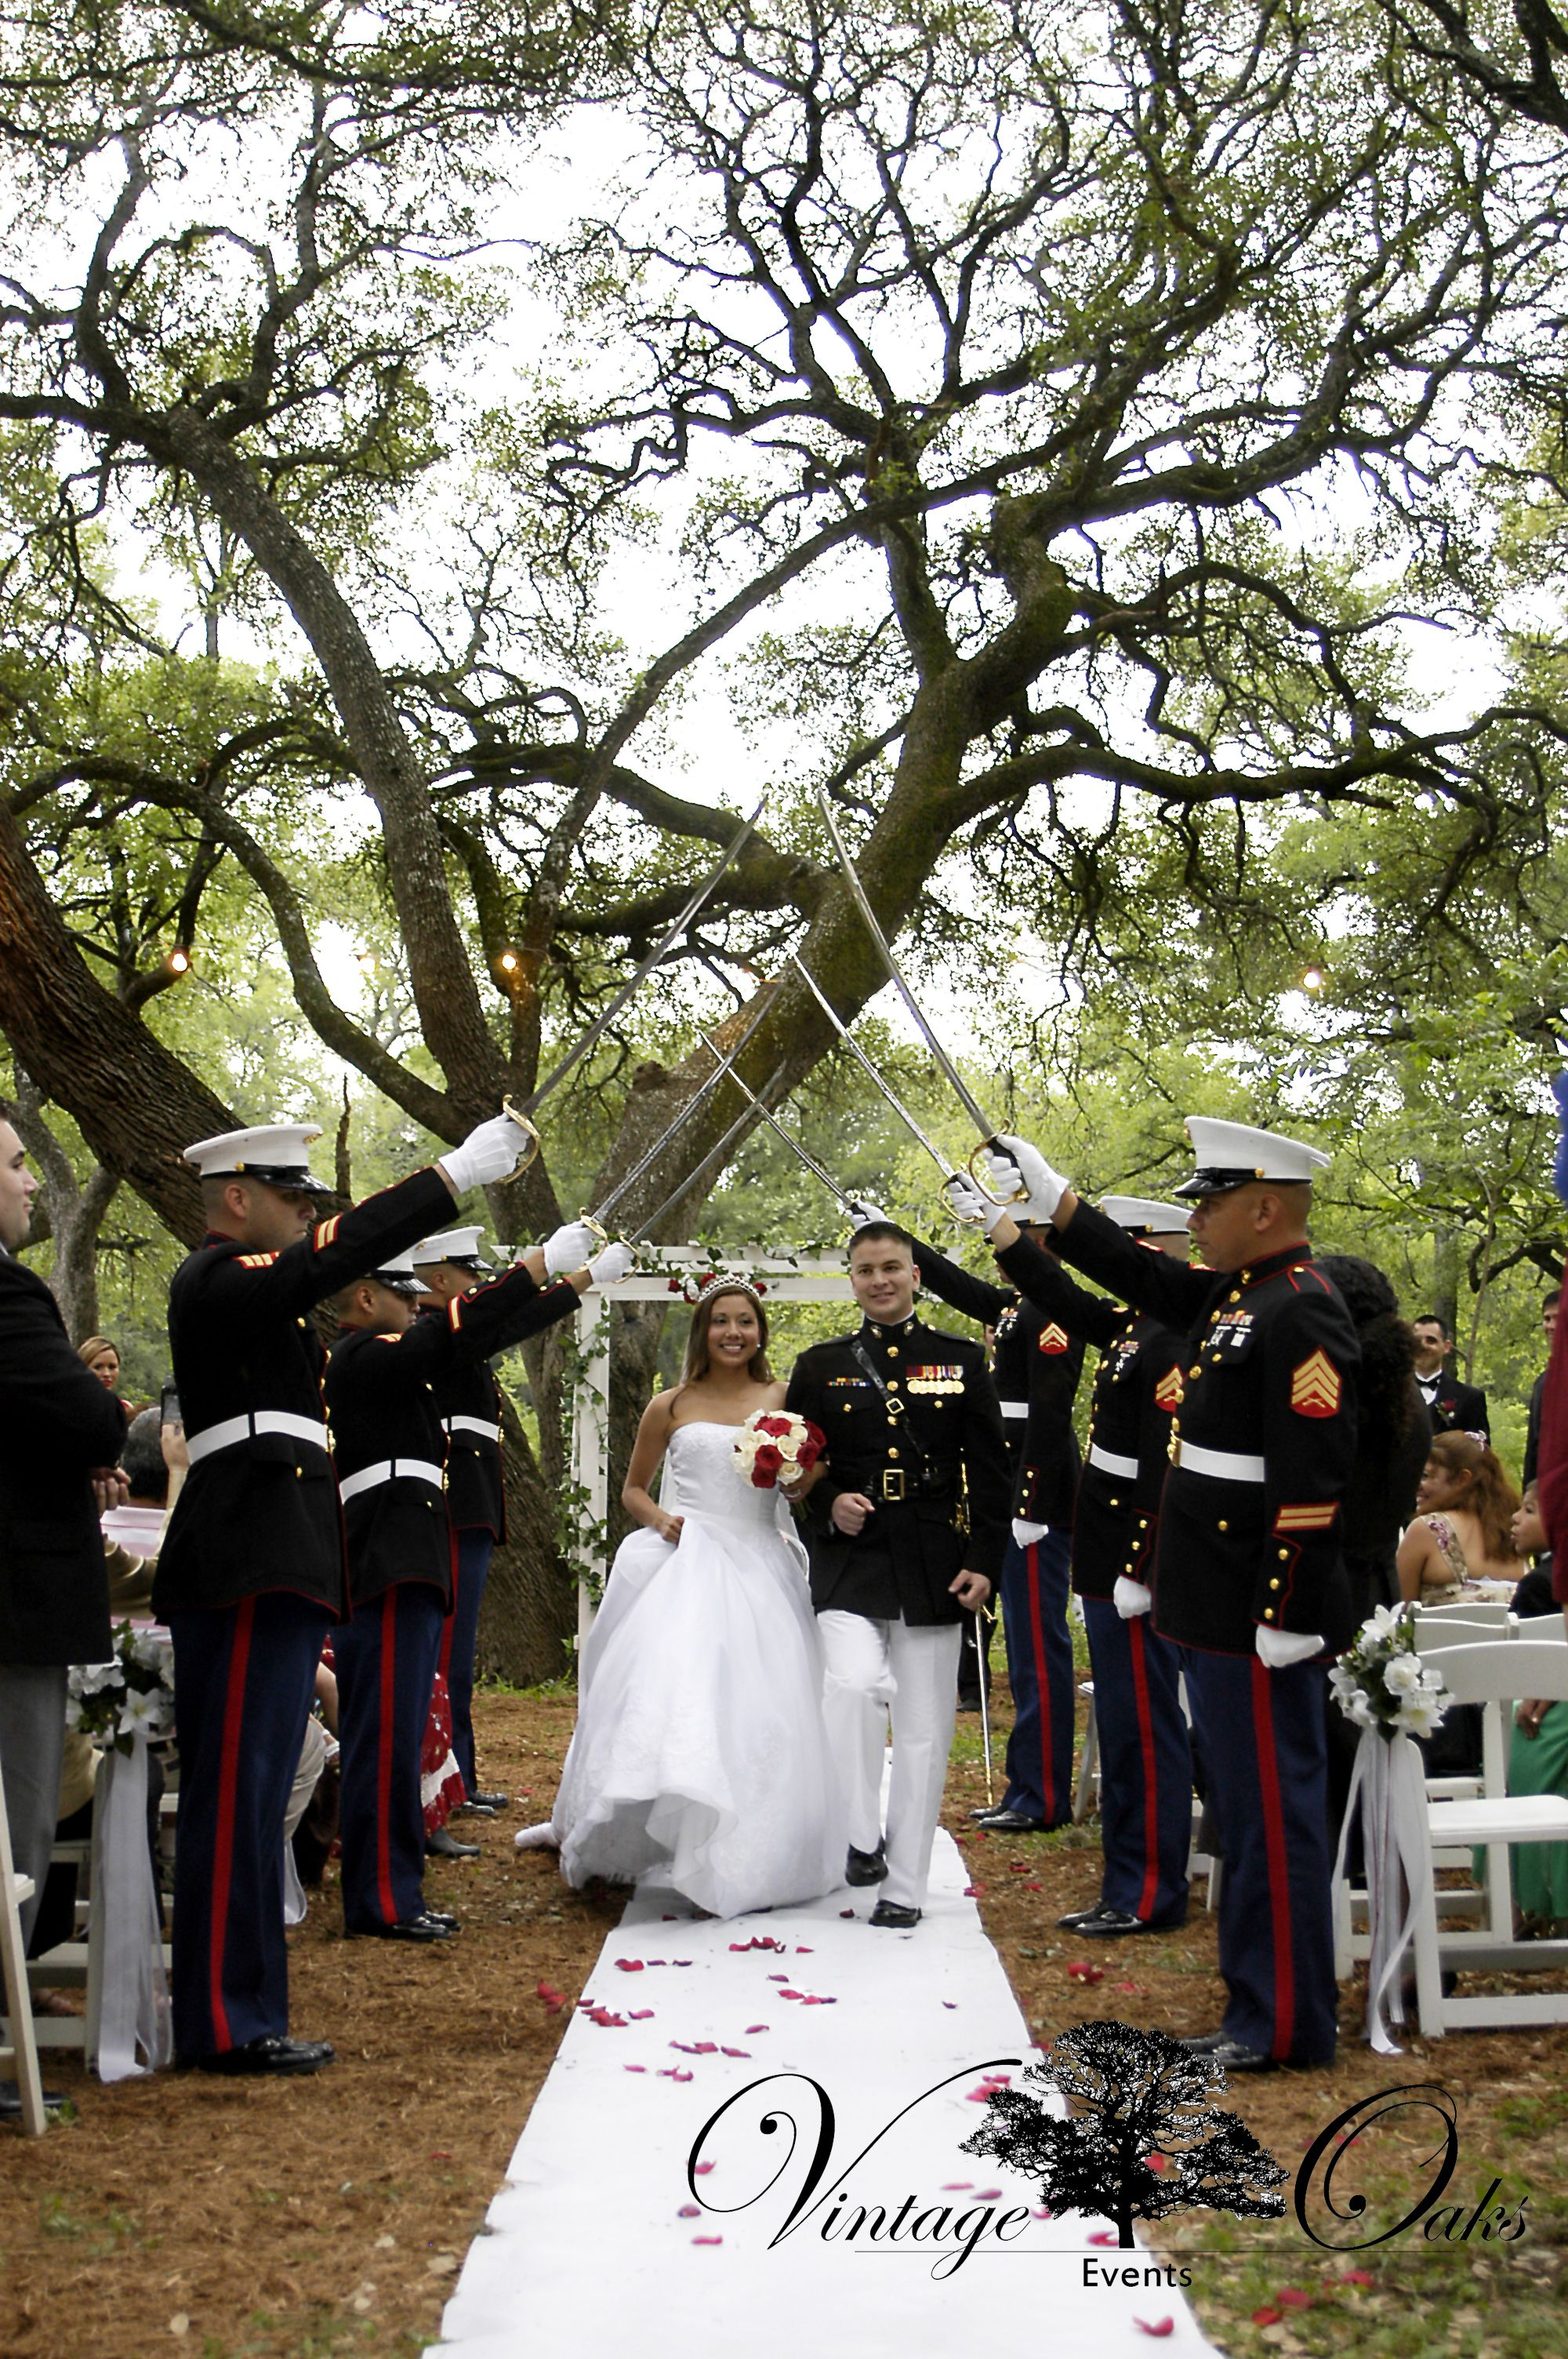 Military Wedding: Marine Corps salute the bride and groom. Outdoor wedding venue with big oak trees. www.vintageoaksevents.com